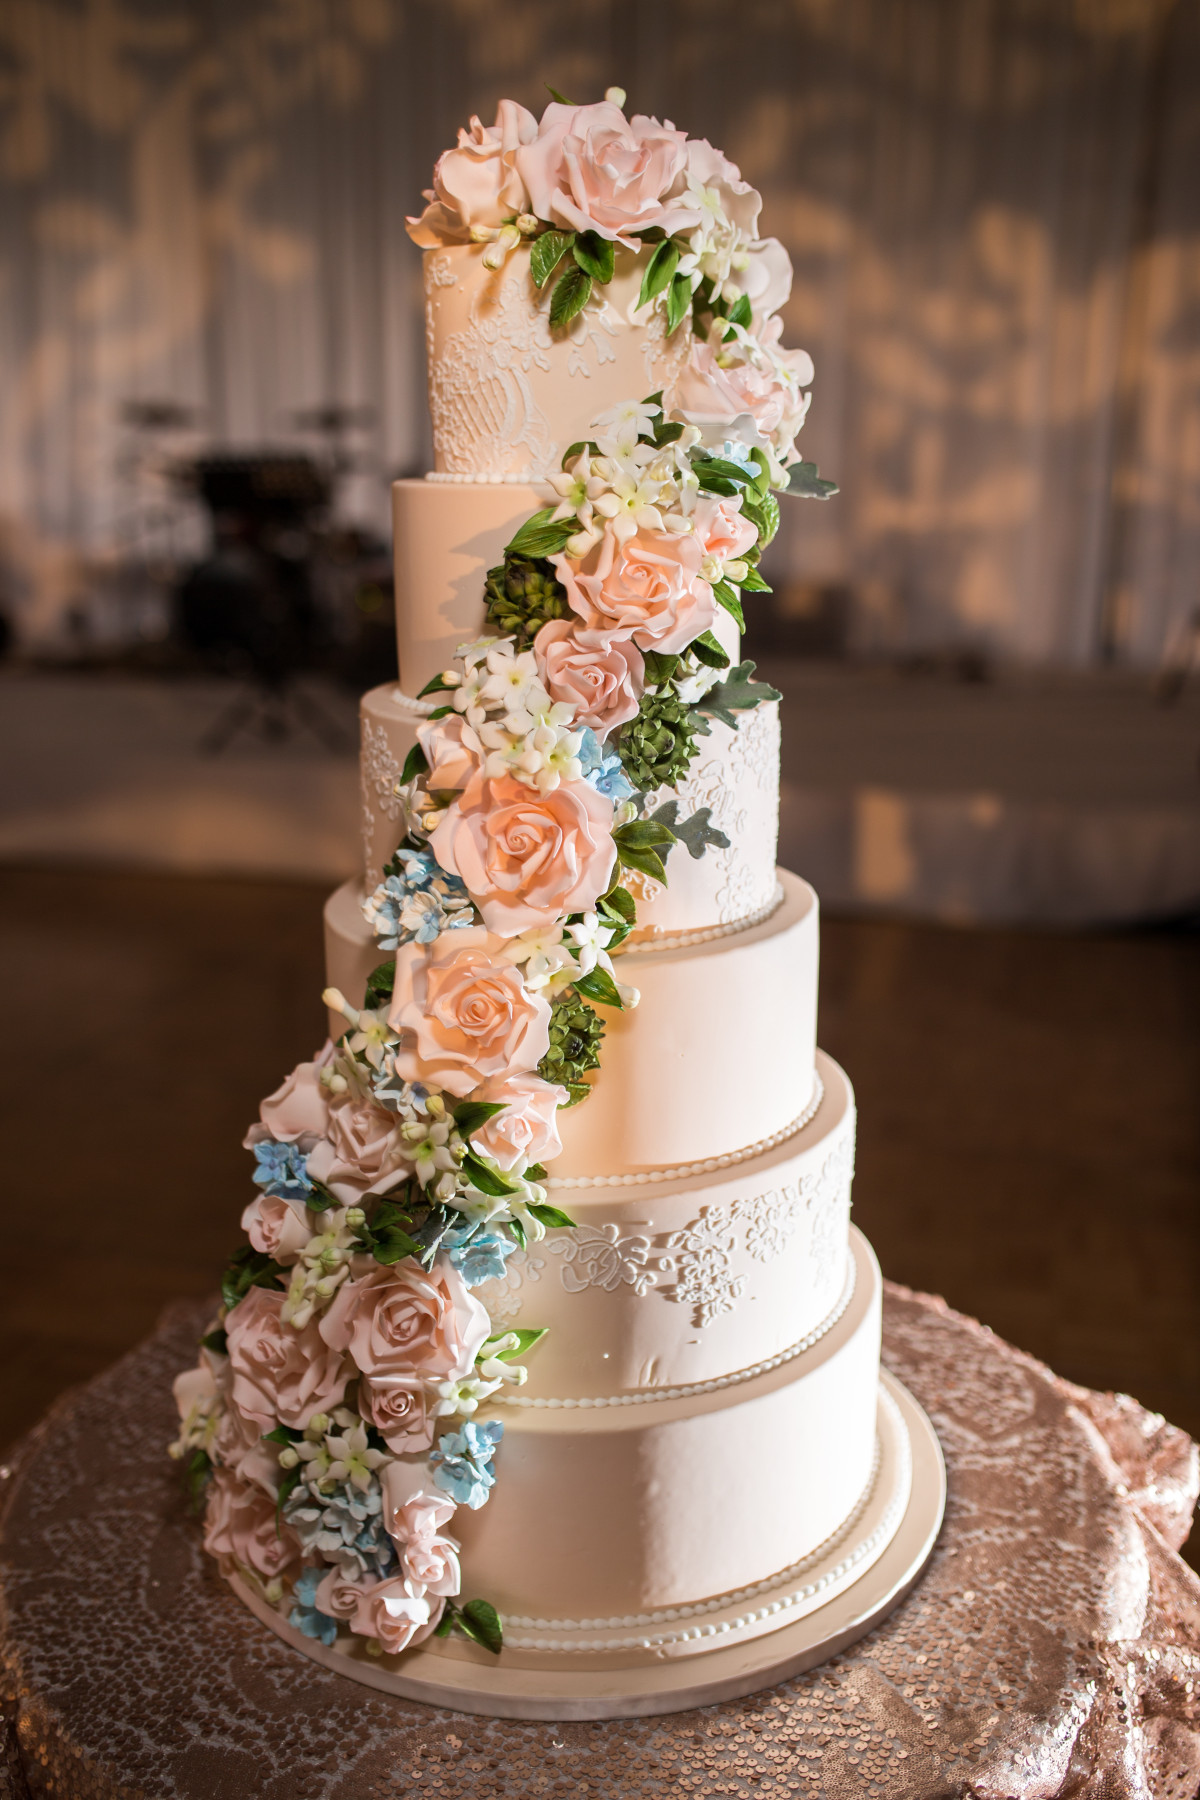 Custom Cake Spotlight: Cascading Sugar Floral Wedding Cake